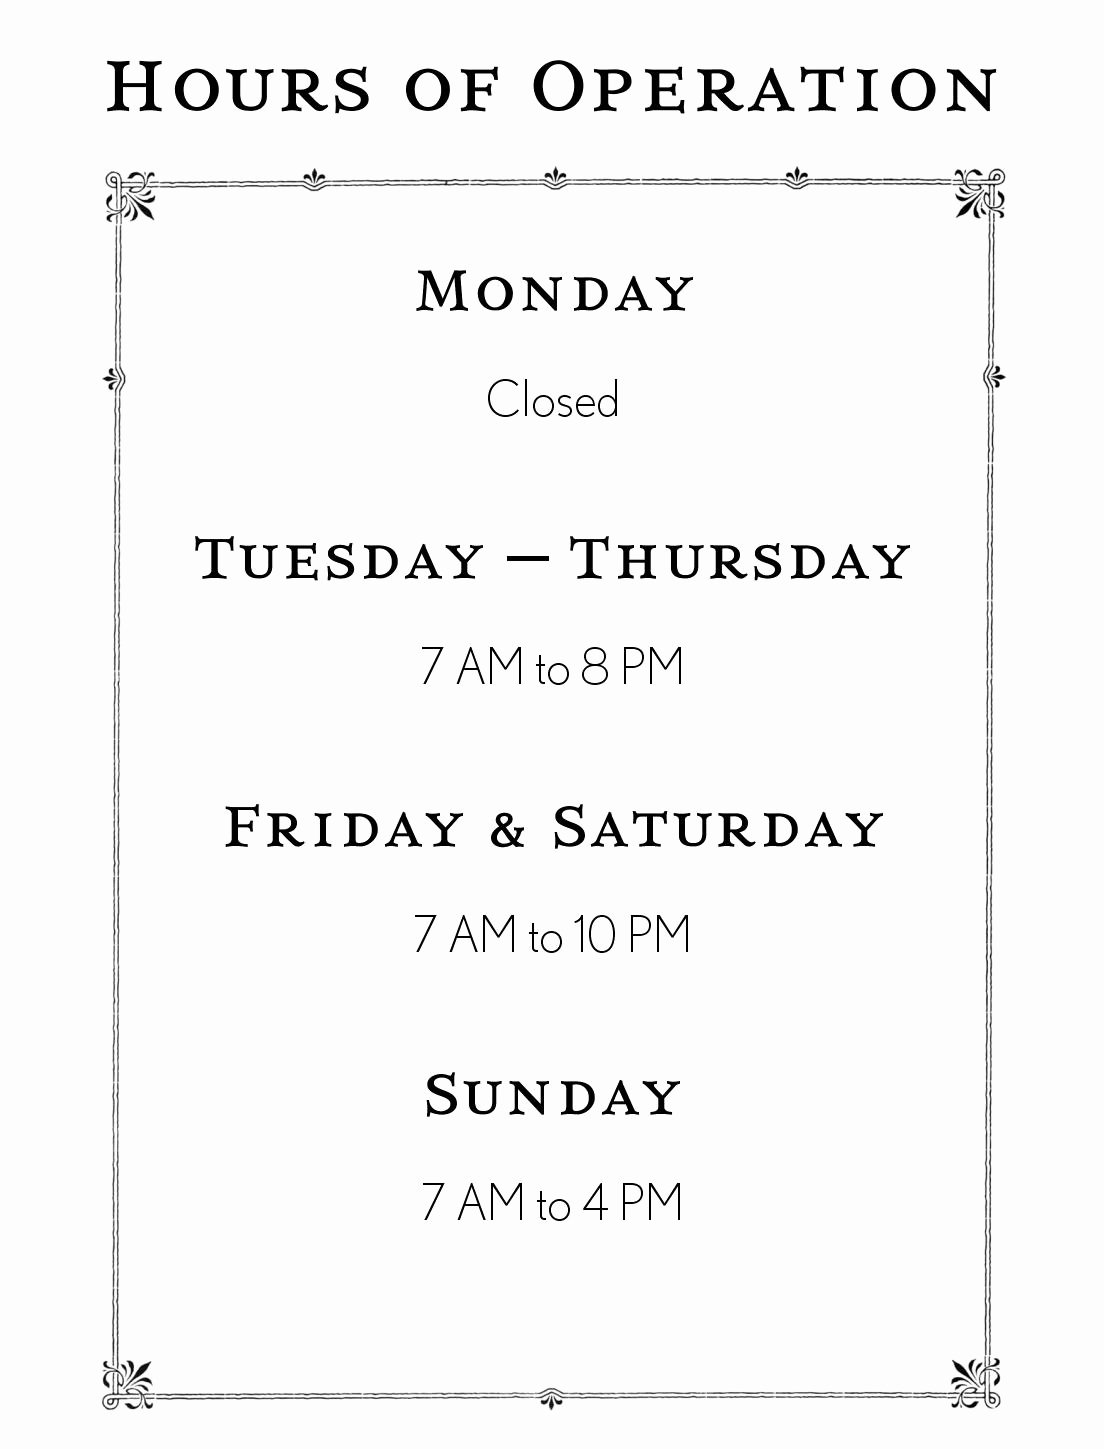 Store Hours Sign Template Unique Hours Operation Template